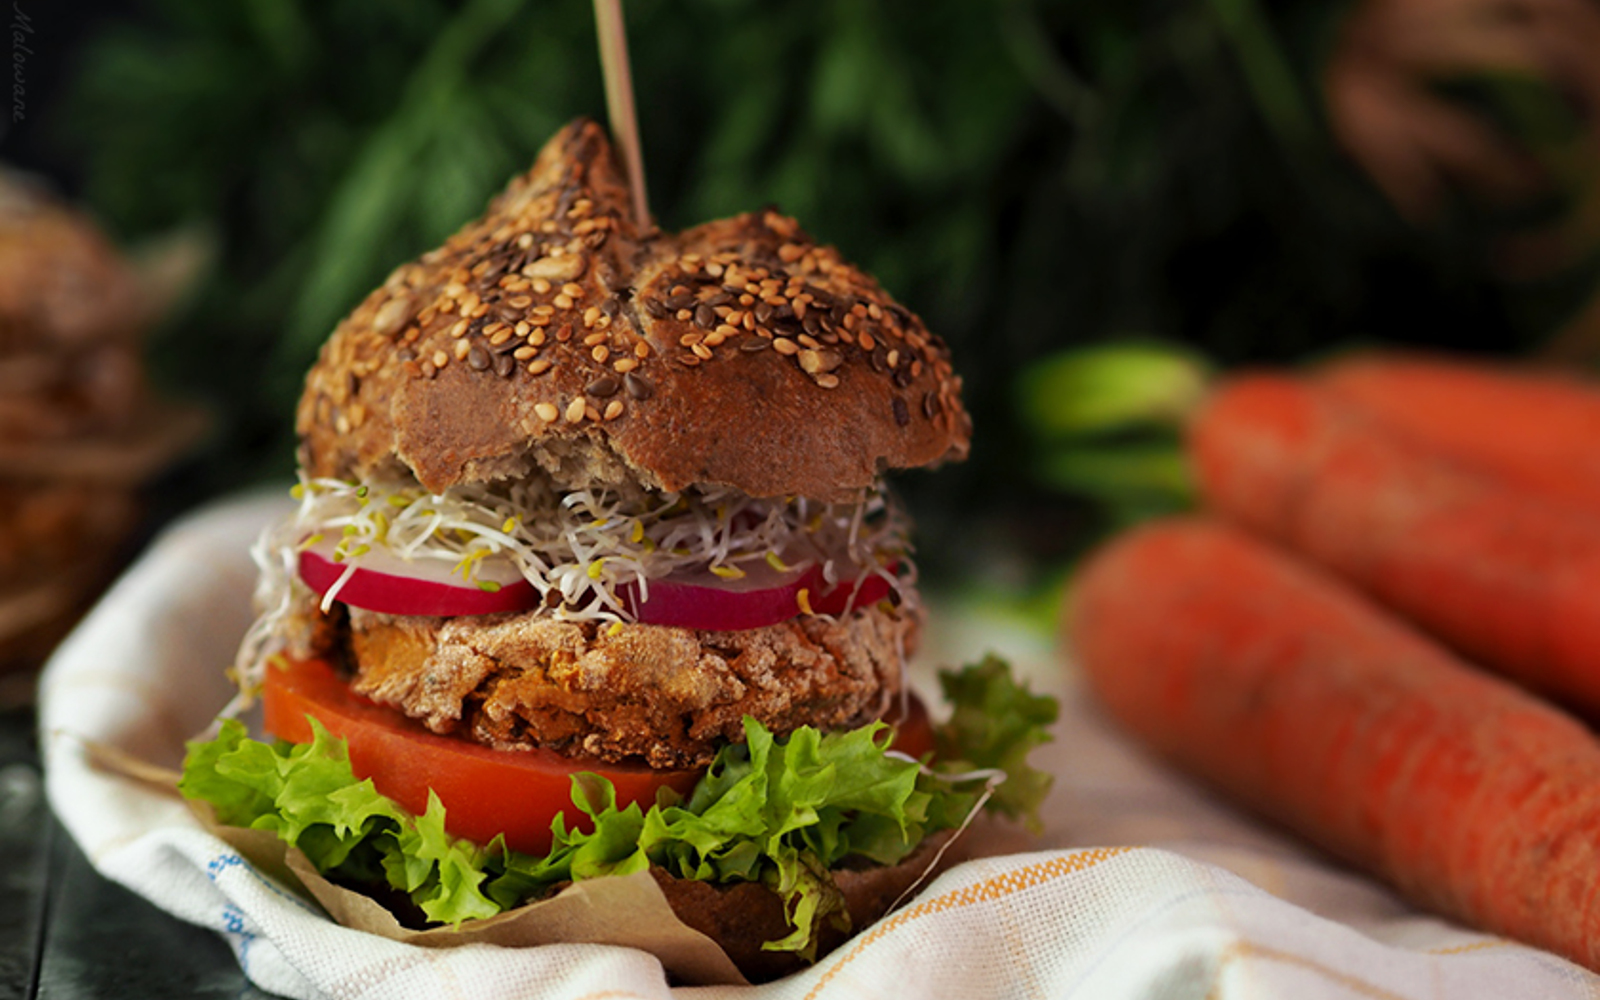 Vegan Carrot Burger